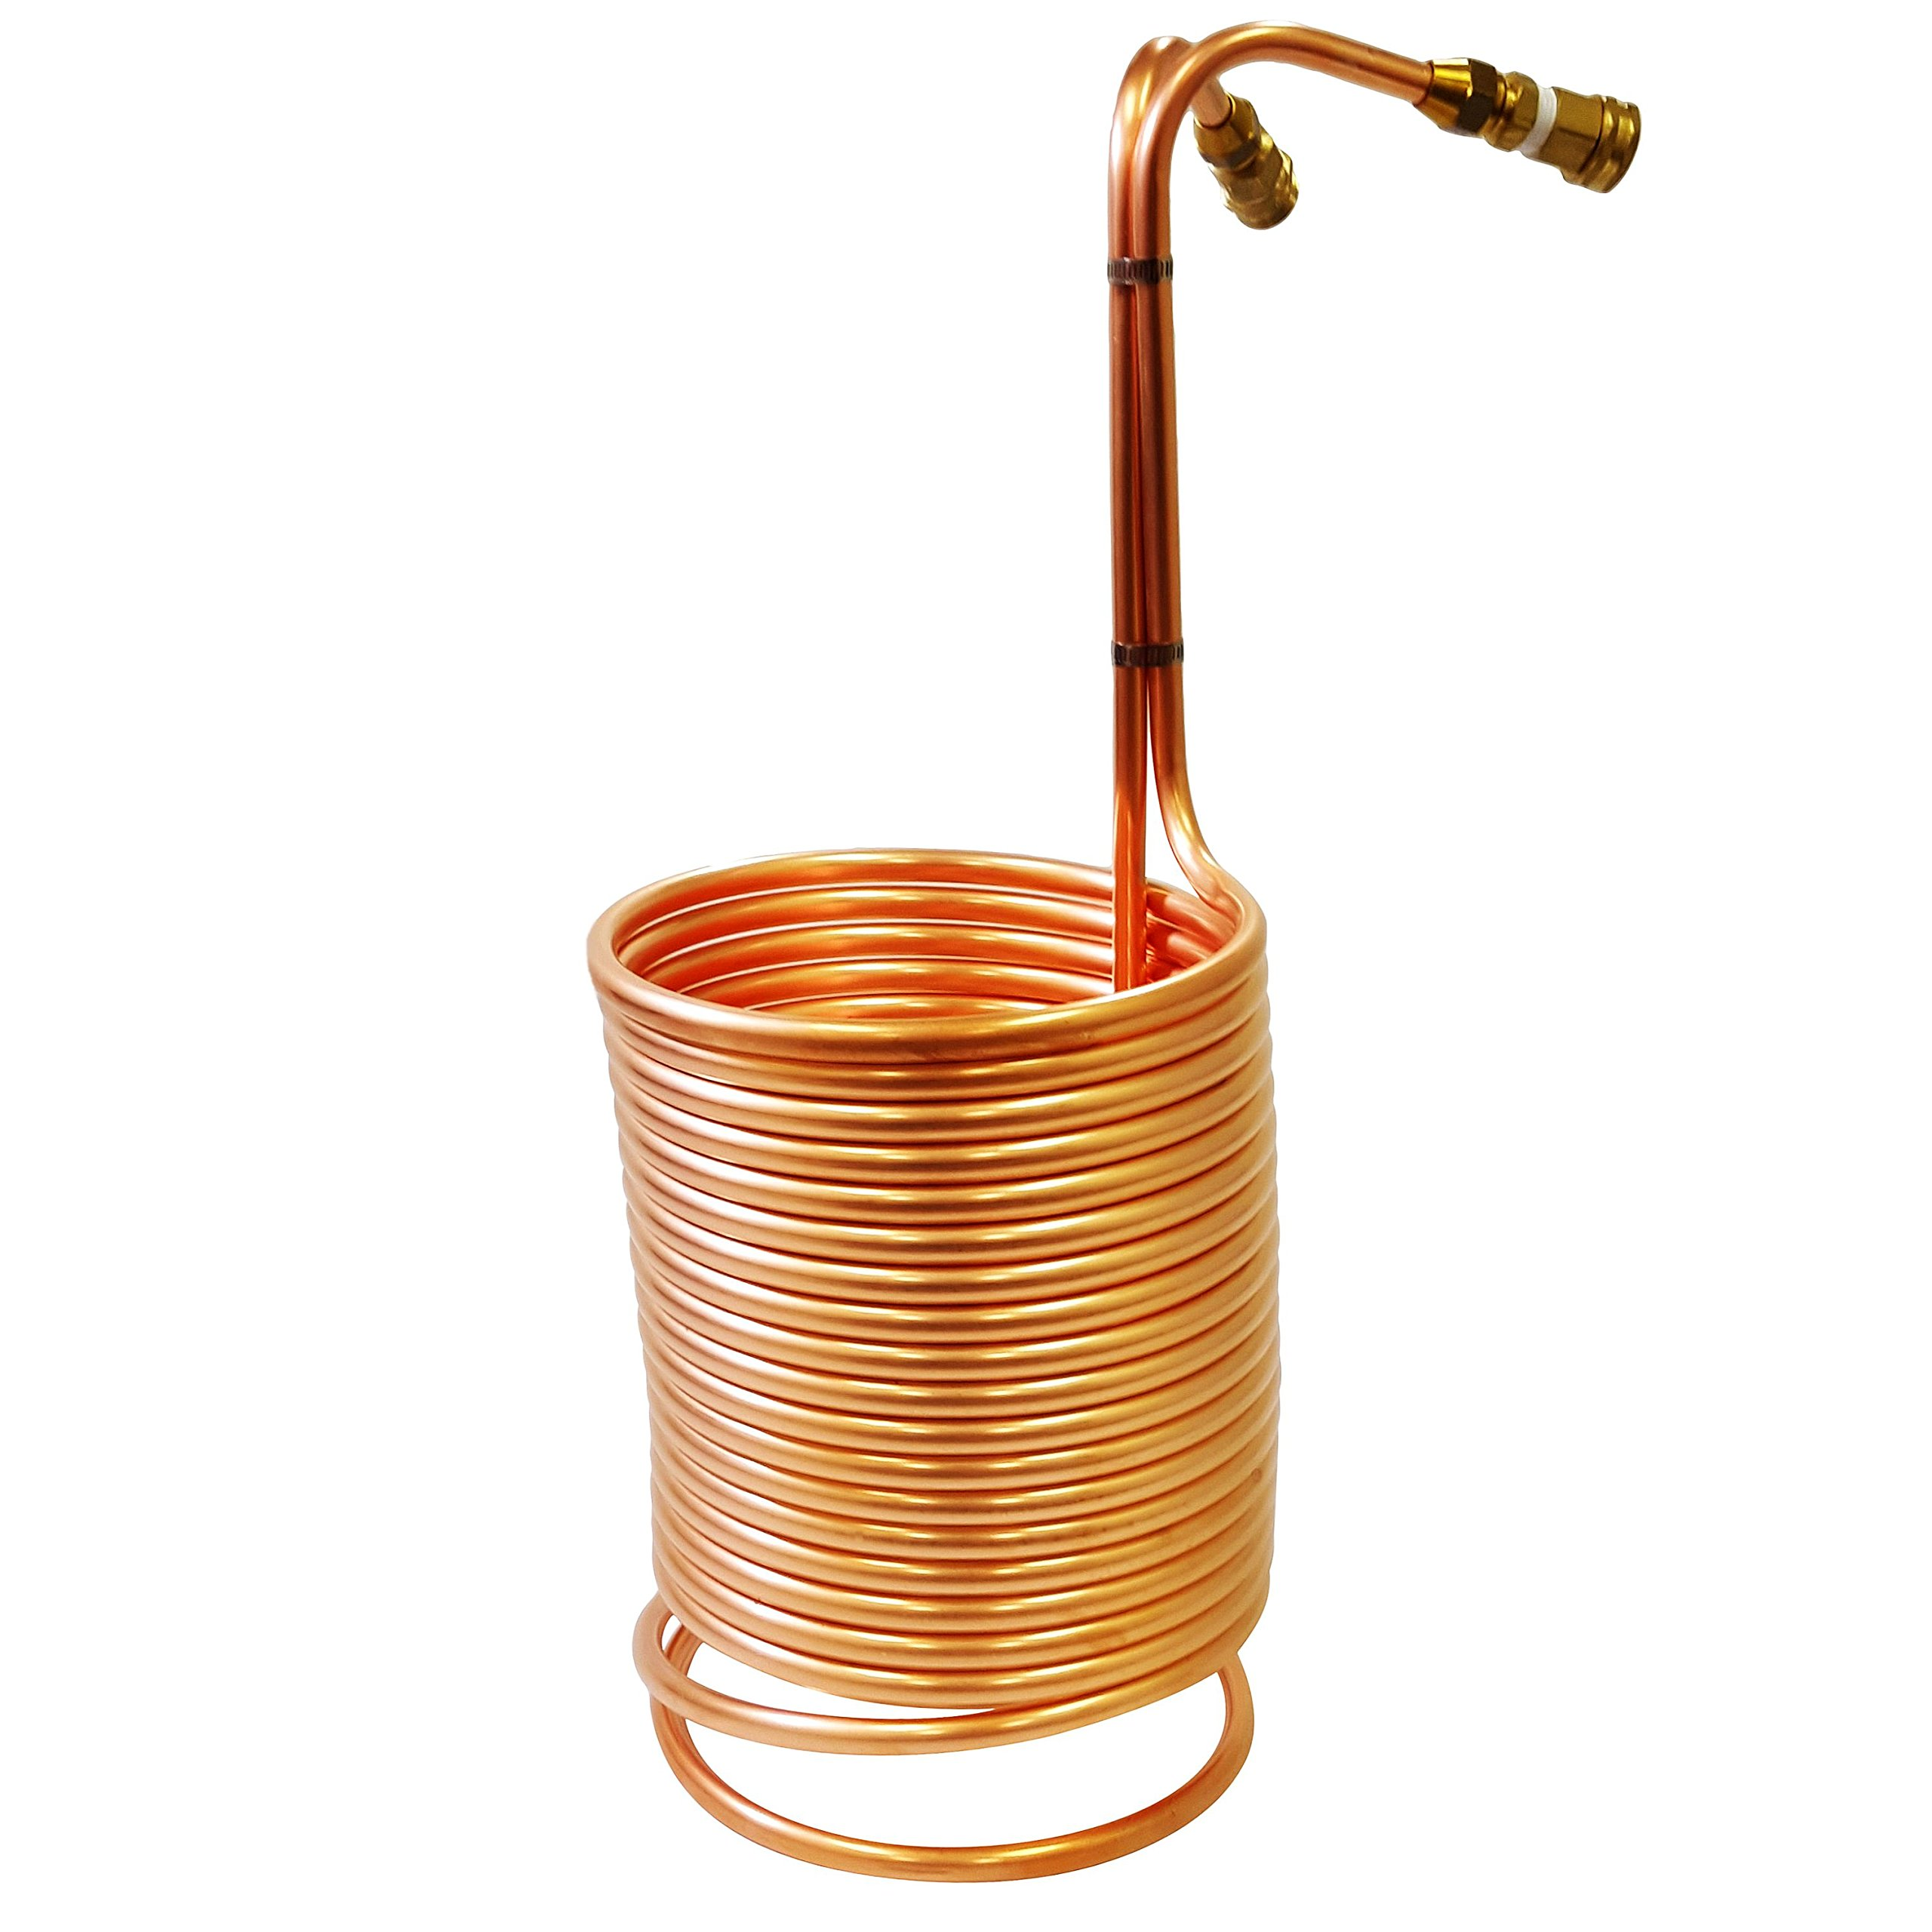 NY Brew Supply Wort Chiller with Garden Hose Fittings, 1/2'' x 50', Copper